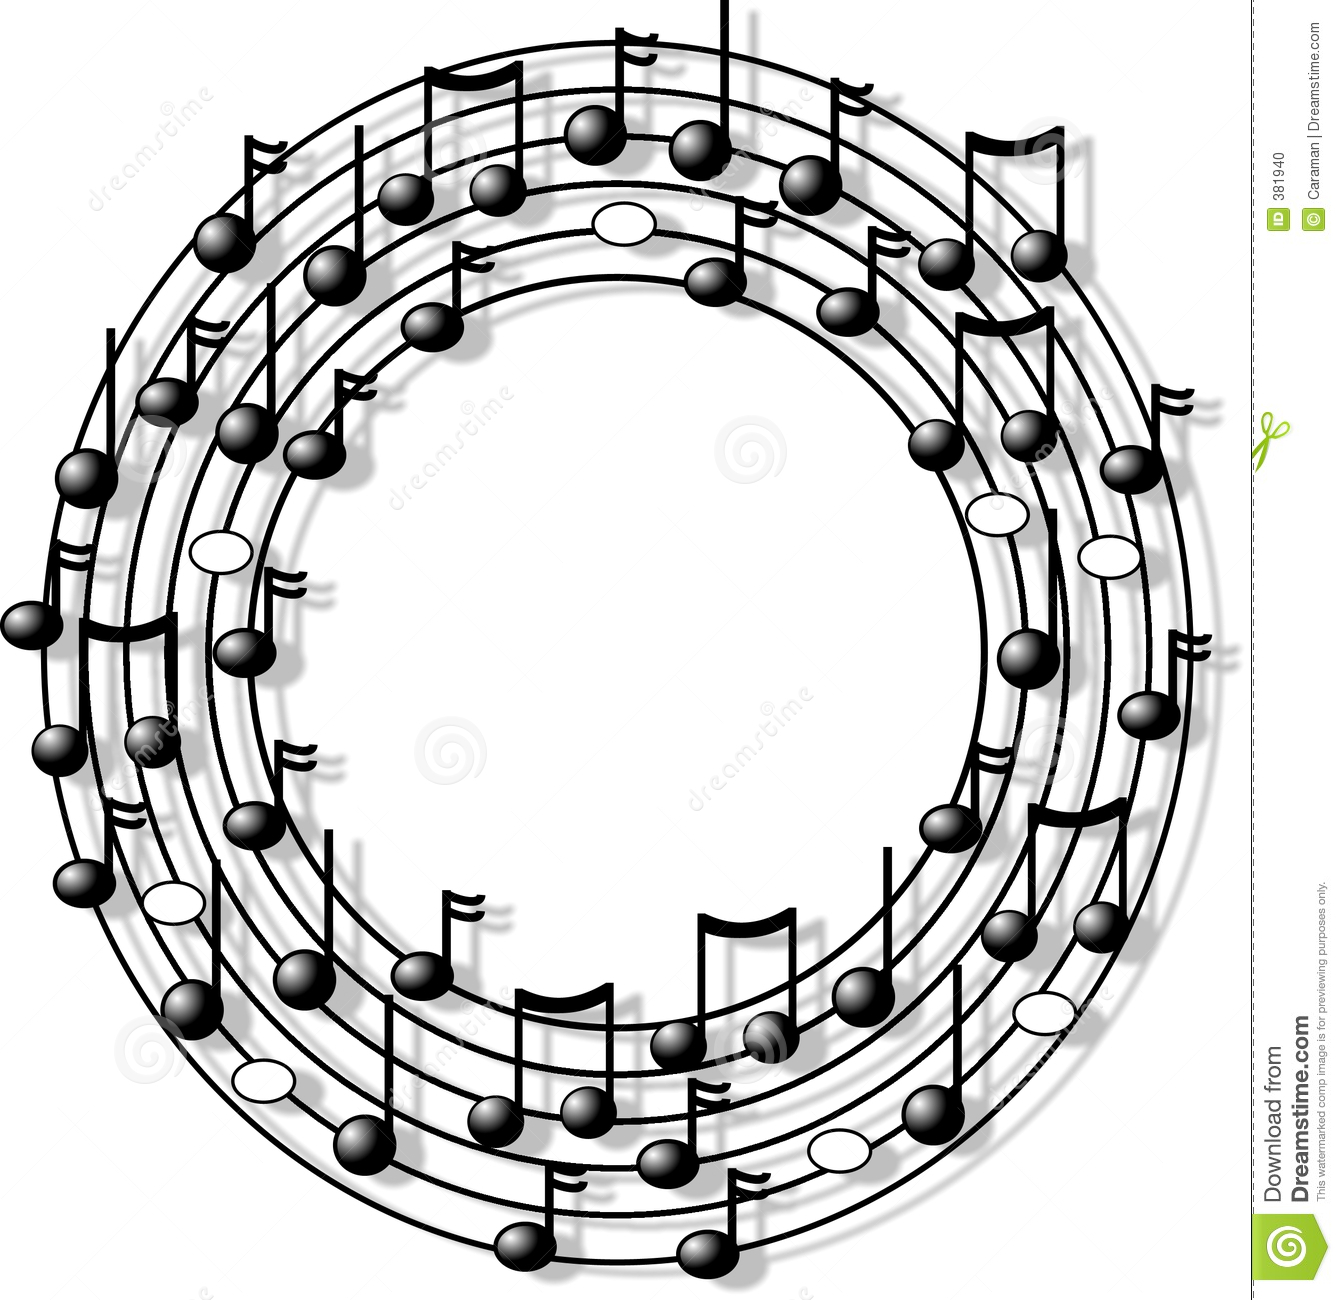 Music ring stock illustration. Illustration of humor